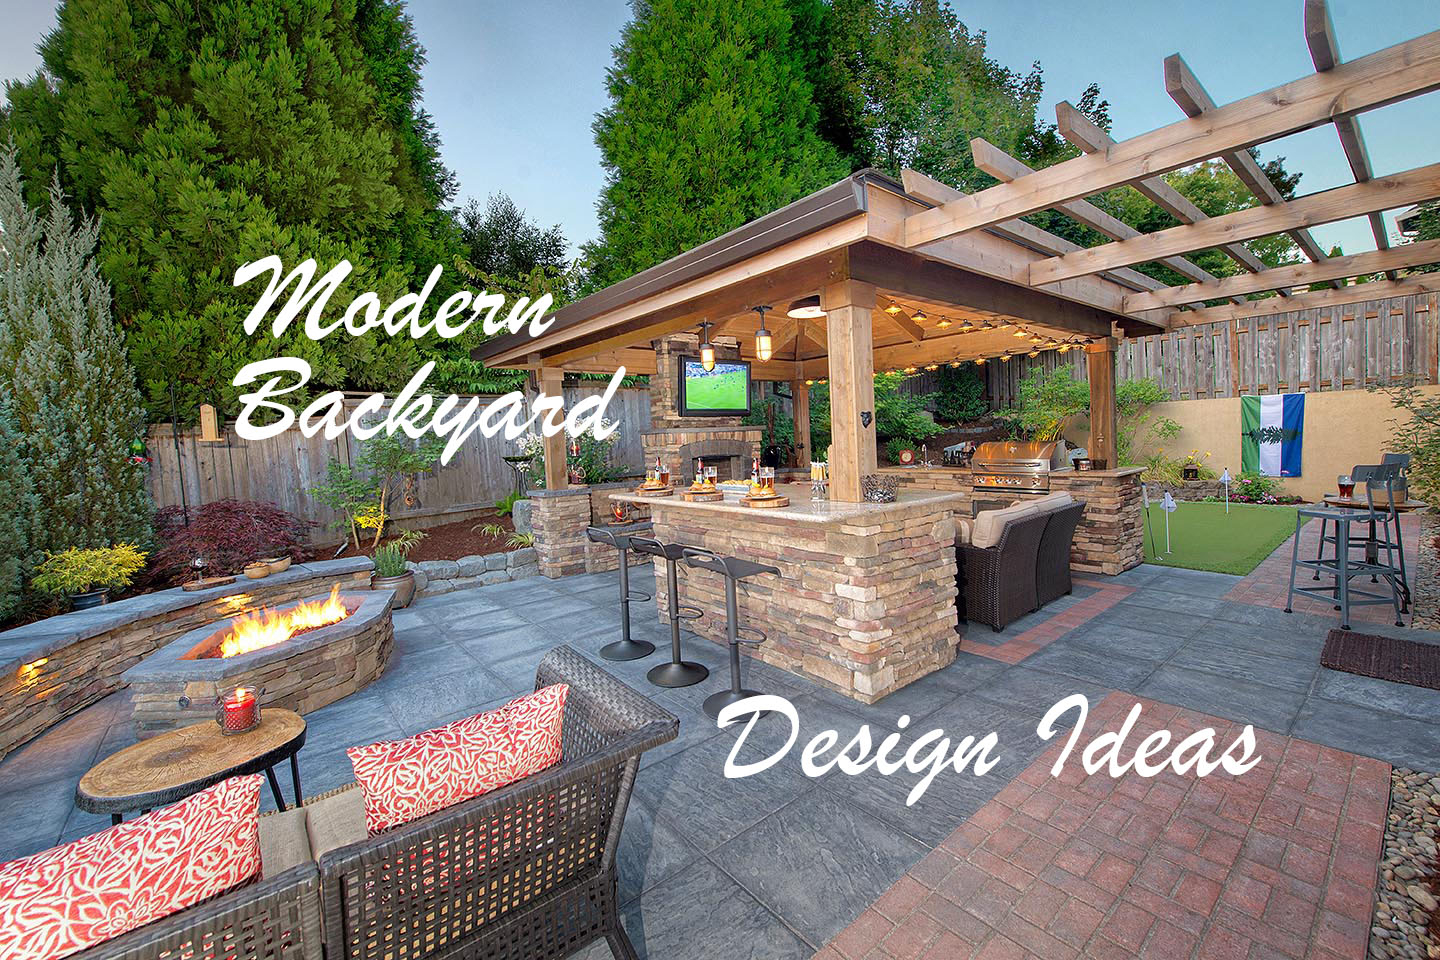 Modern Backyard Design Ideas Paradise Restored Landscaping regarding Modern Backyard Ideas